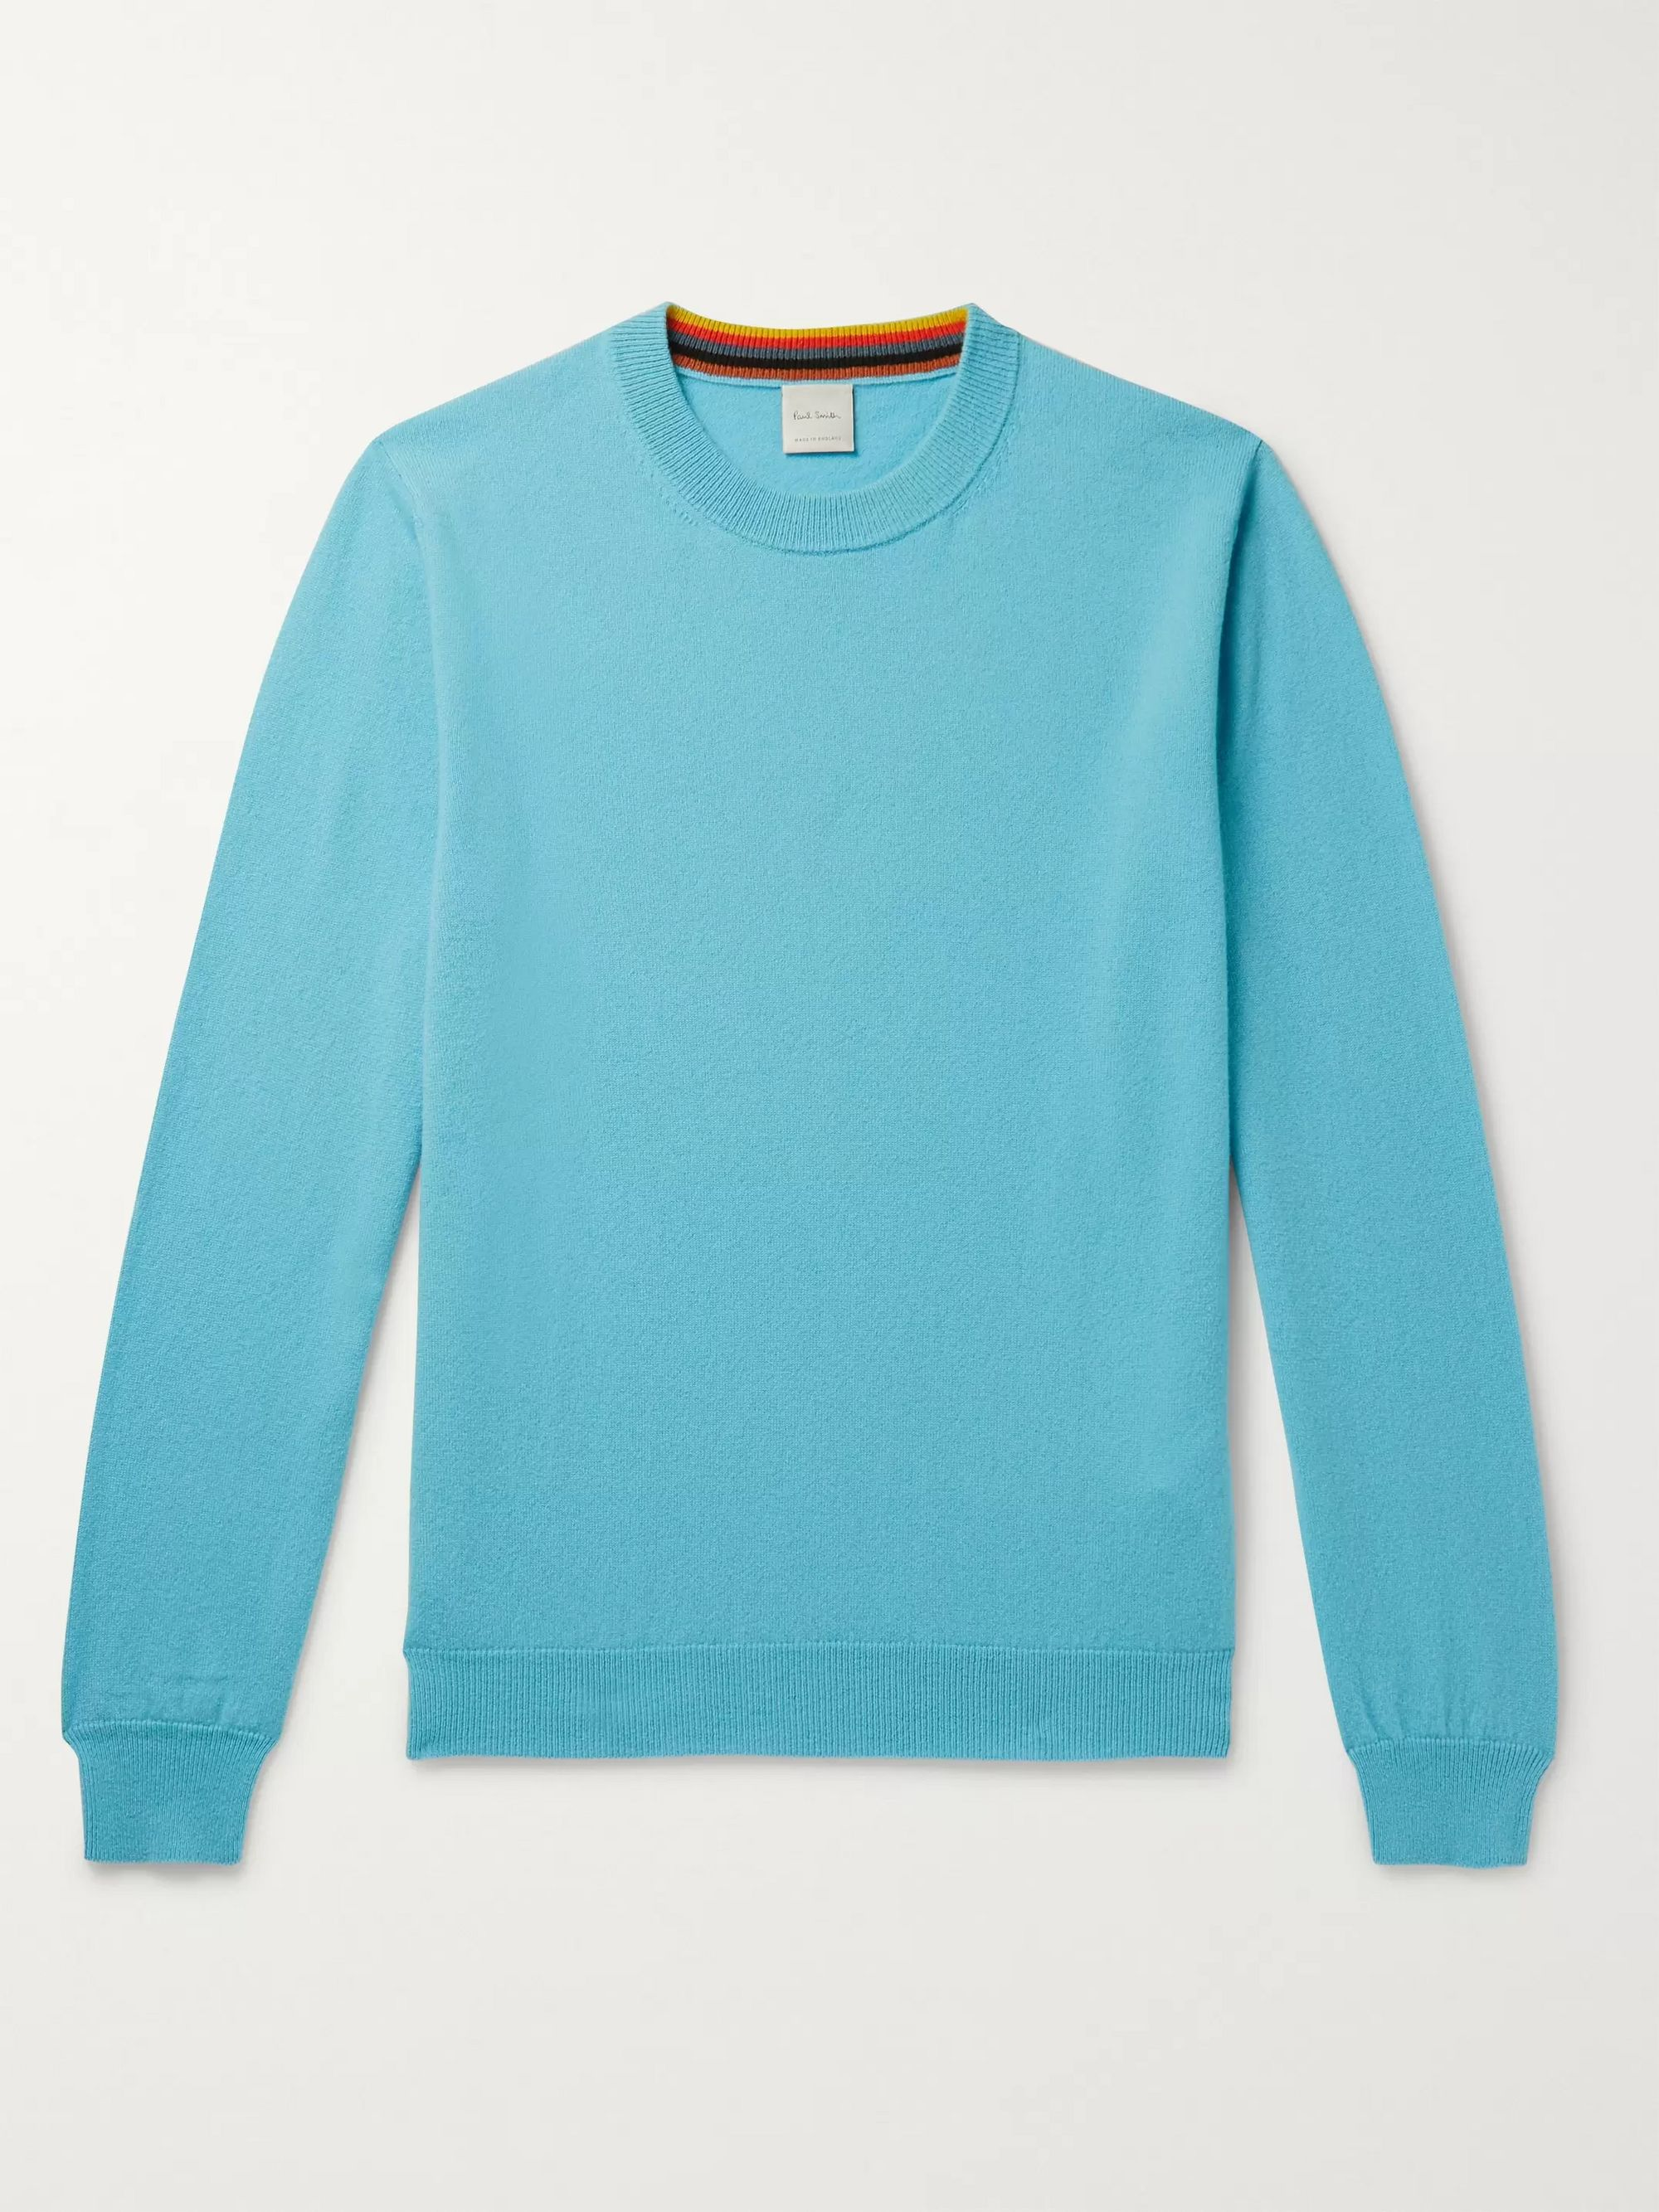 Paul Smith Cashmere Sweater